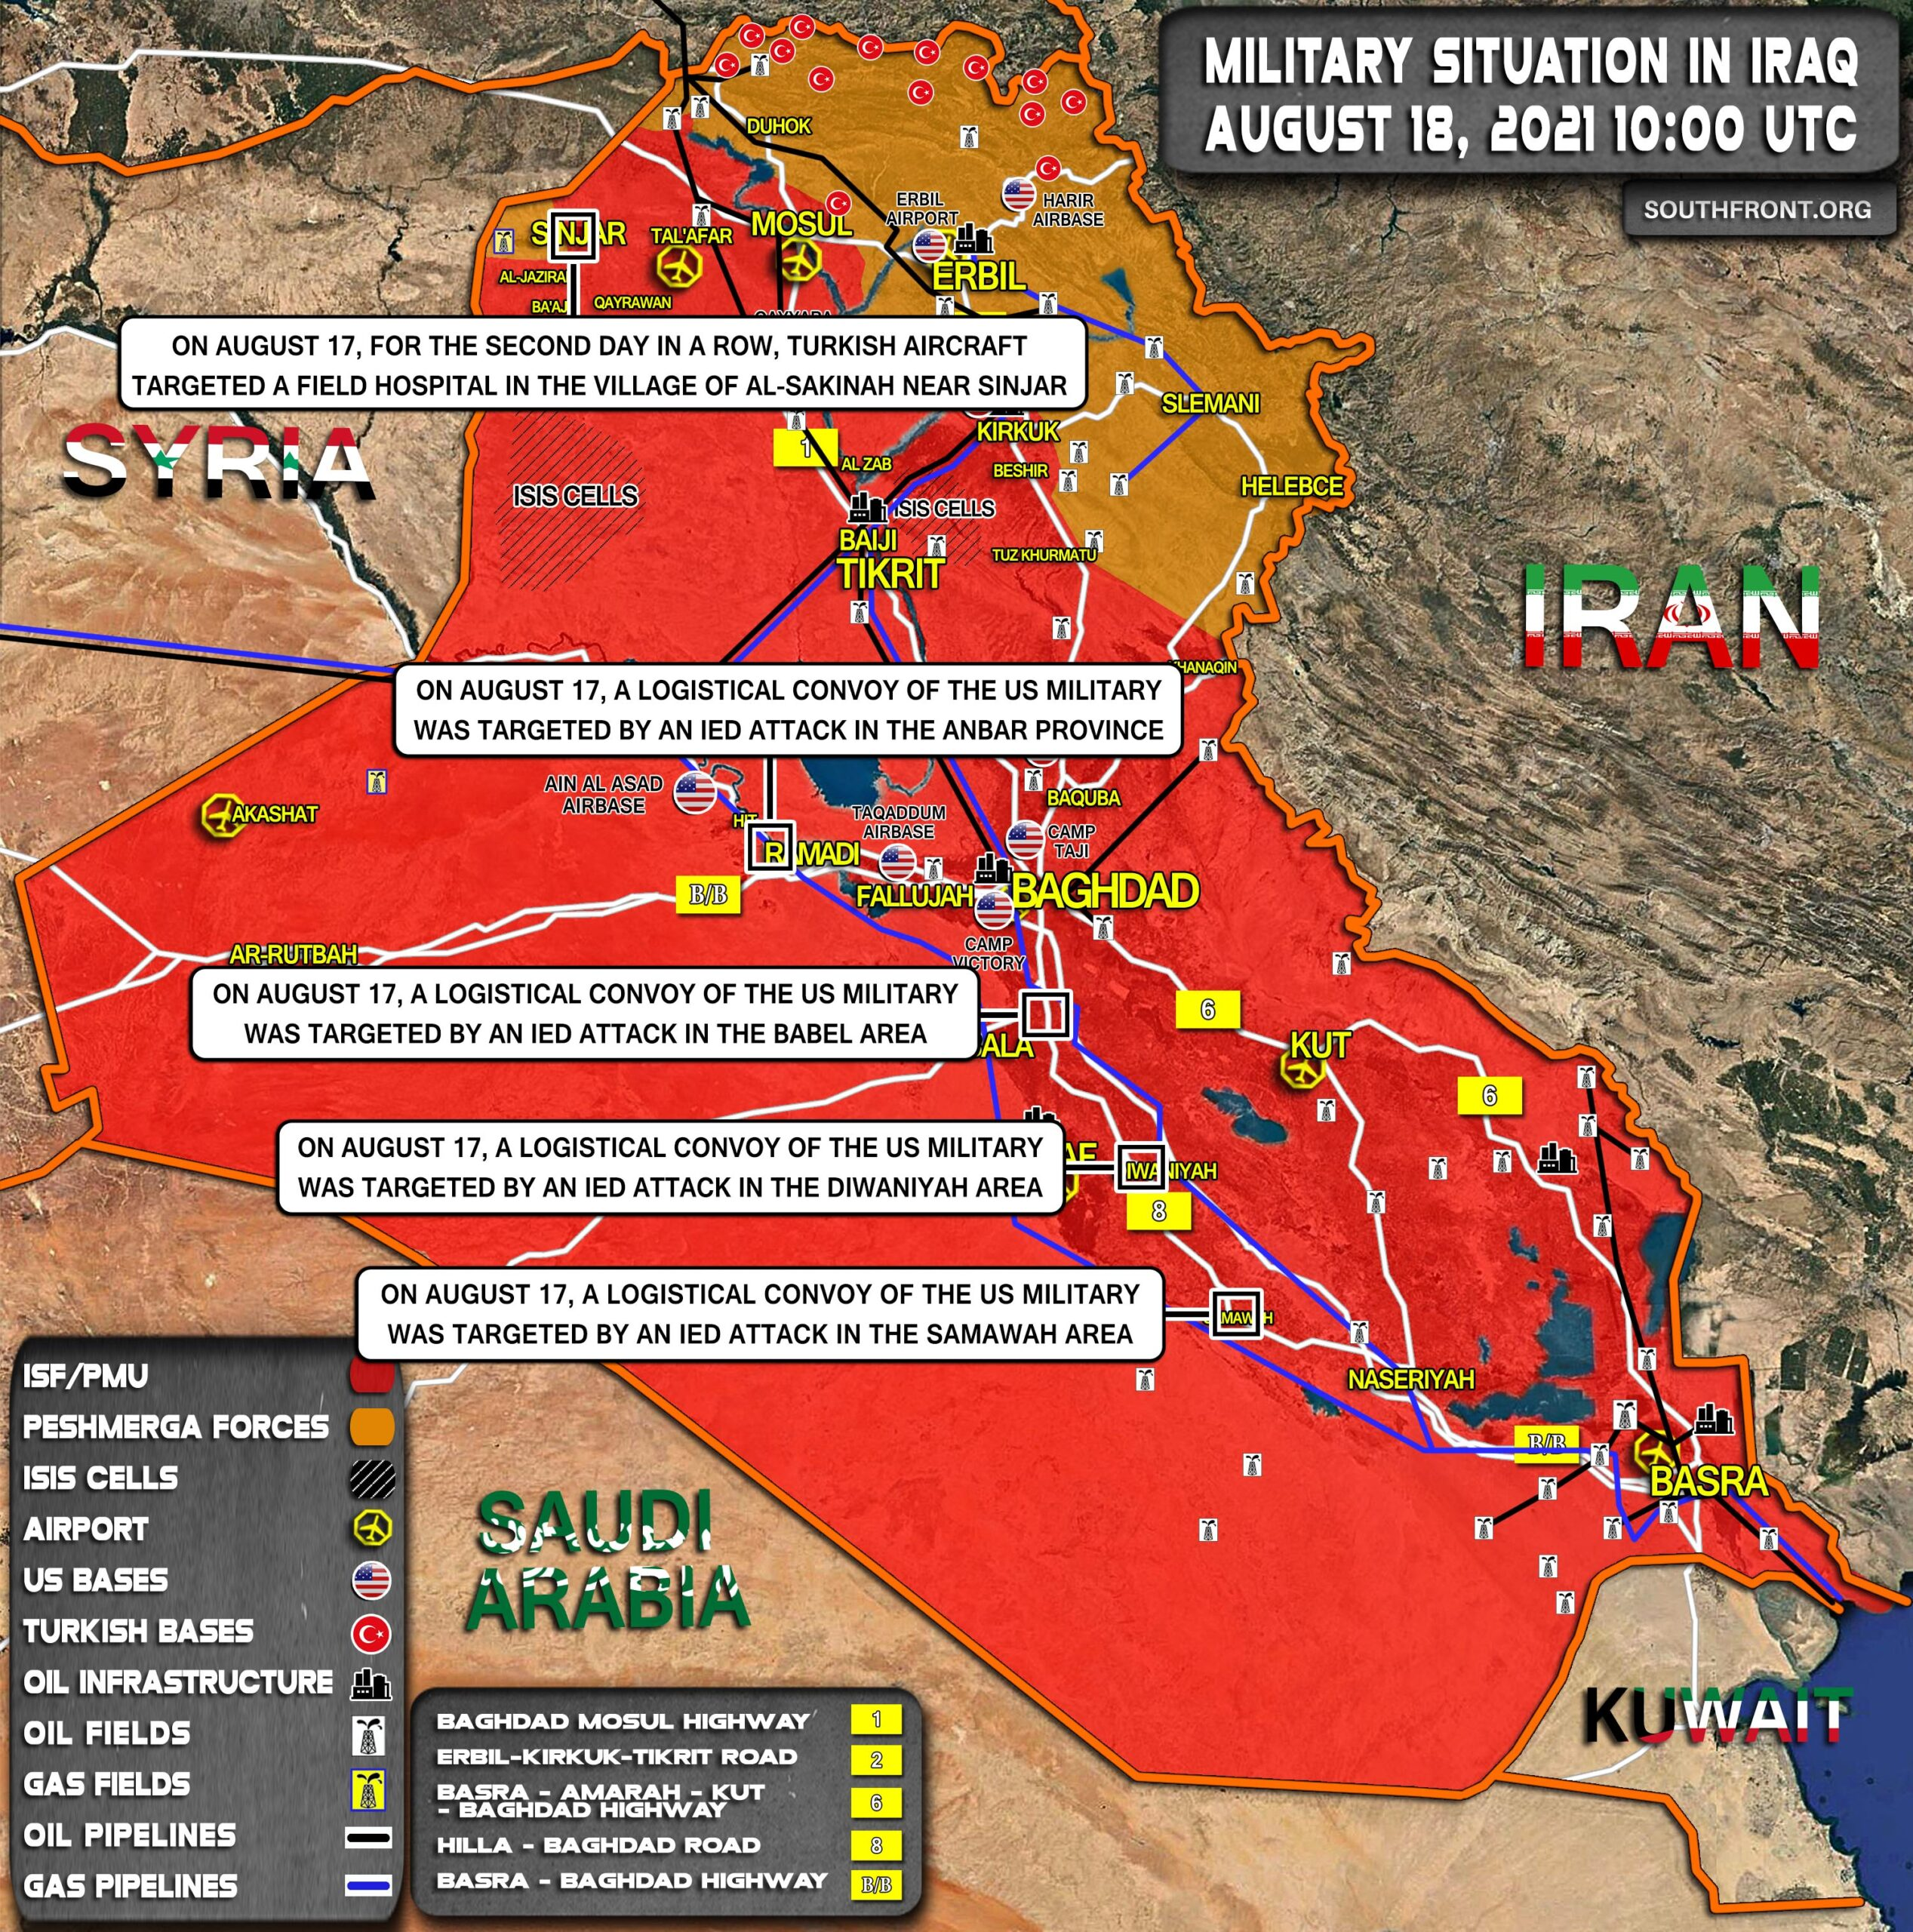 Military Situation In Iraq On August 18, 2021 (Map Update)